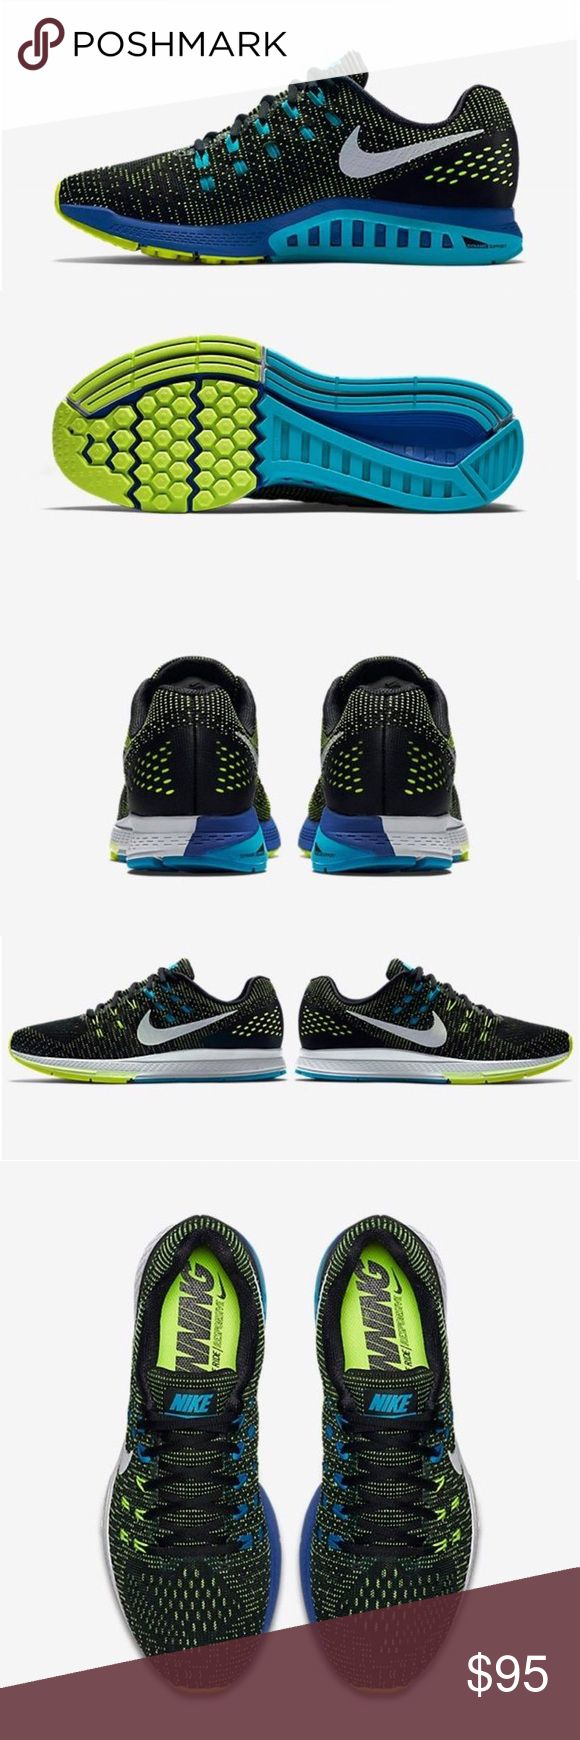 Men's Nike Air Zoom Structure 19 The Nike Zoom Structure 19 is a standard support running shoe best suited for daily training and moderate foot motion Nike Shoes Athletic Shoes